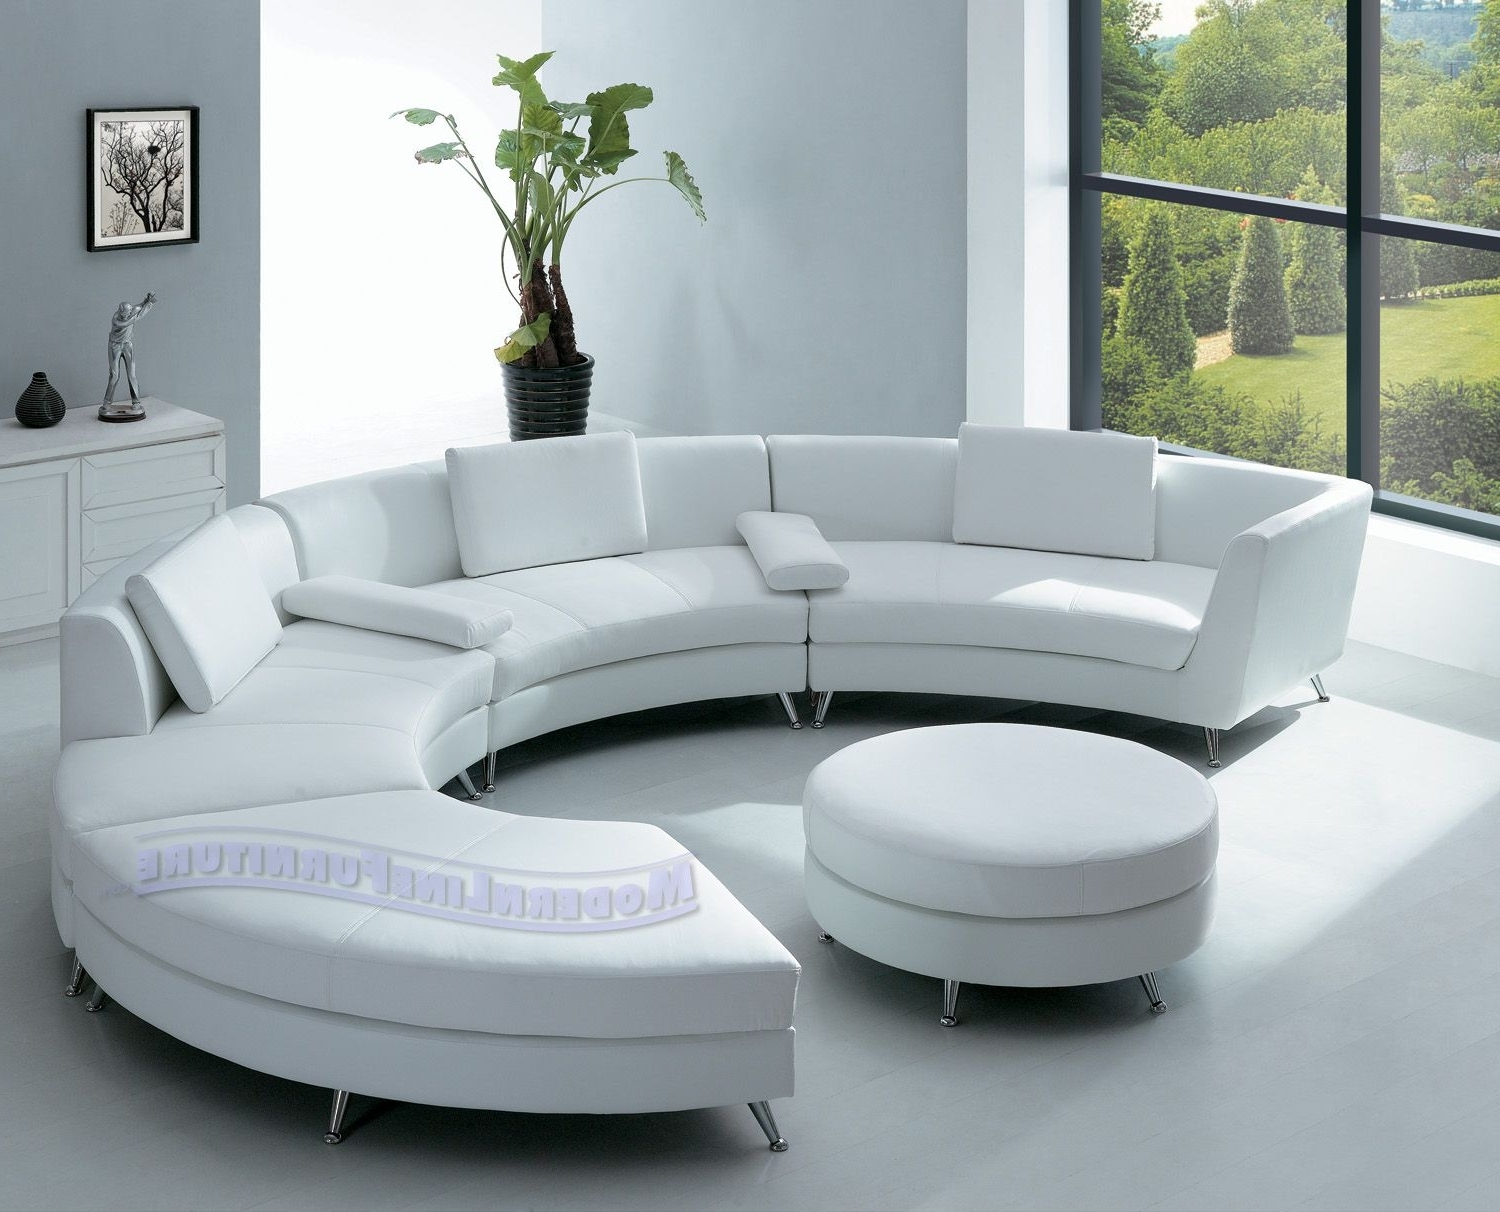 Favorite Room Furniture With Elegant Half Circle Sofa Home Interior Designs With Regard To Contemporary Sofa Chairs (View 6 of 20)